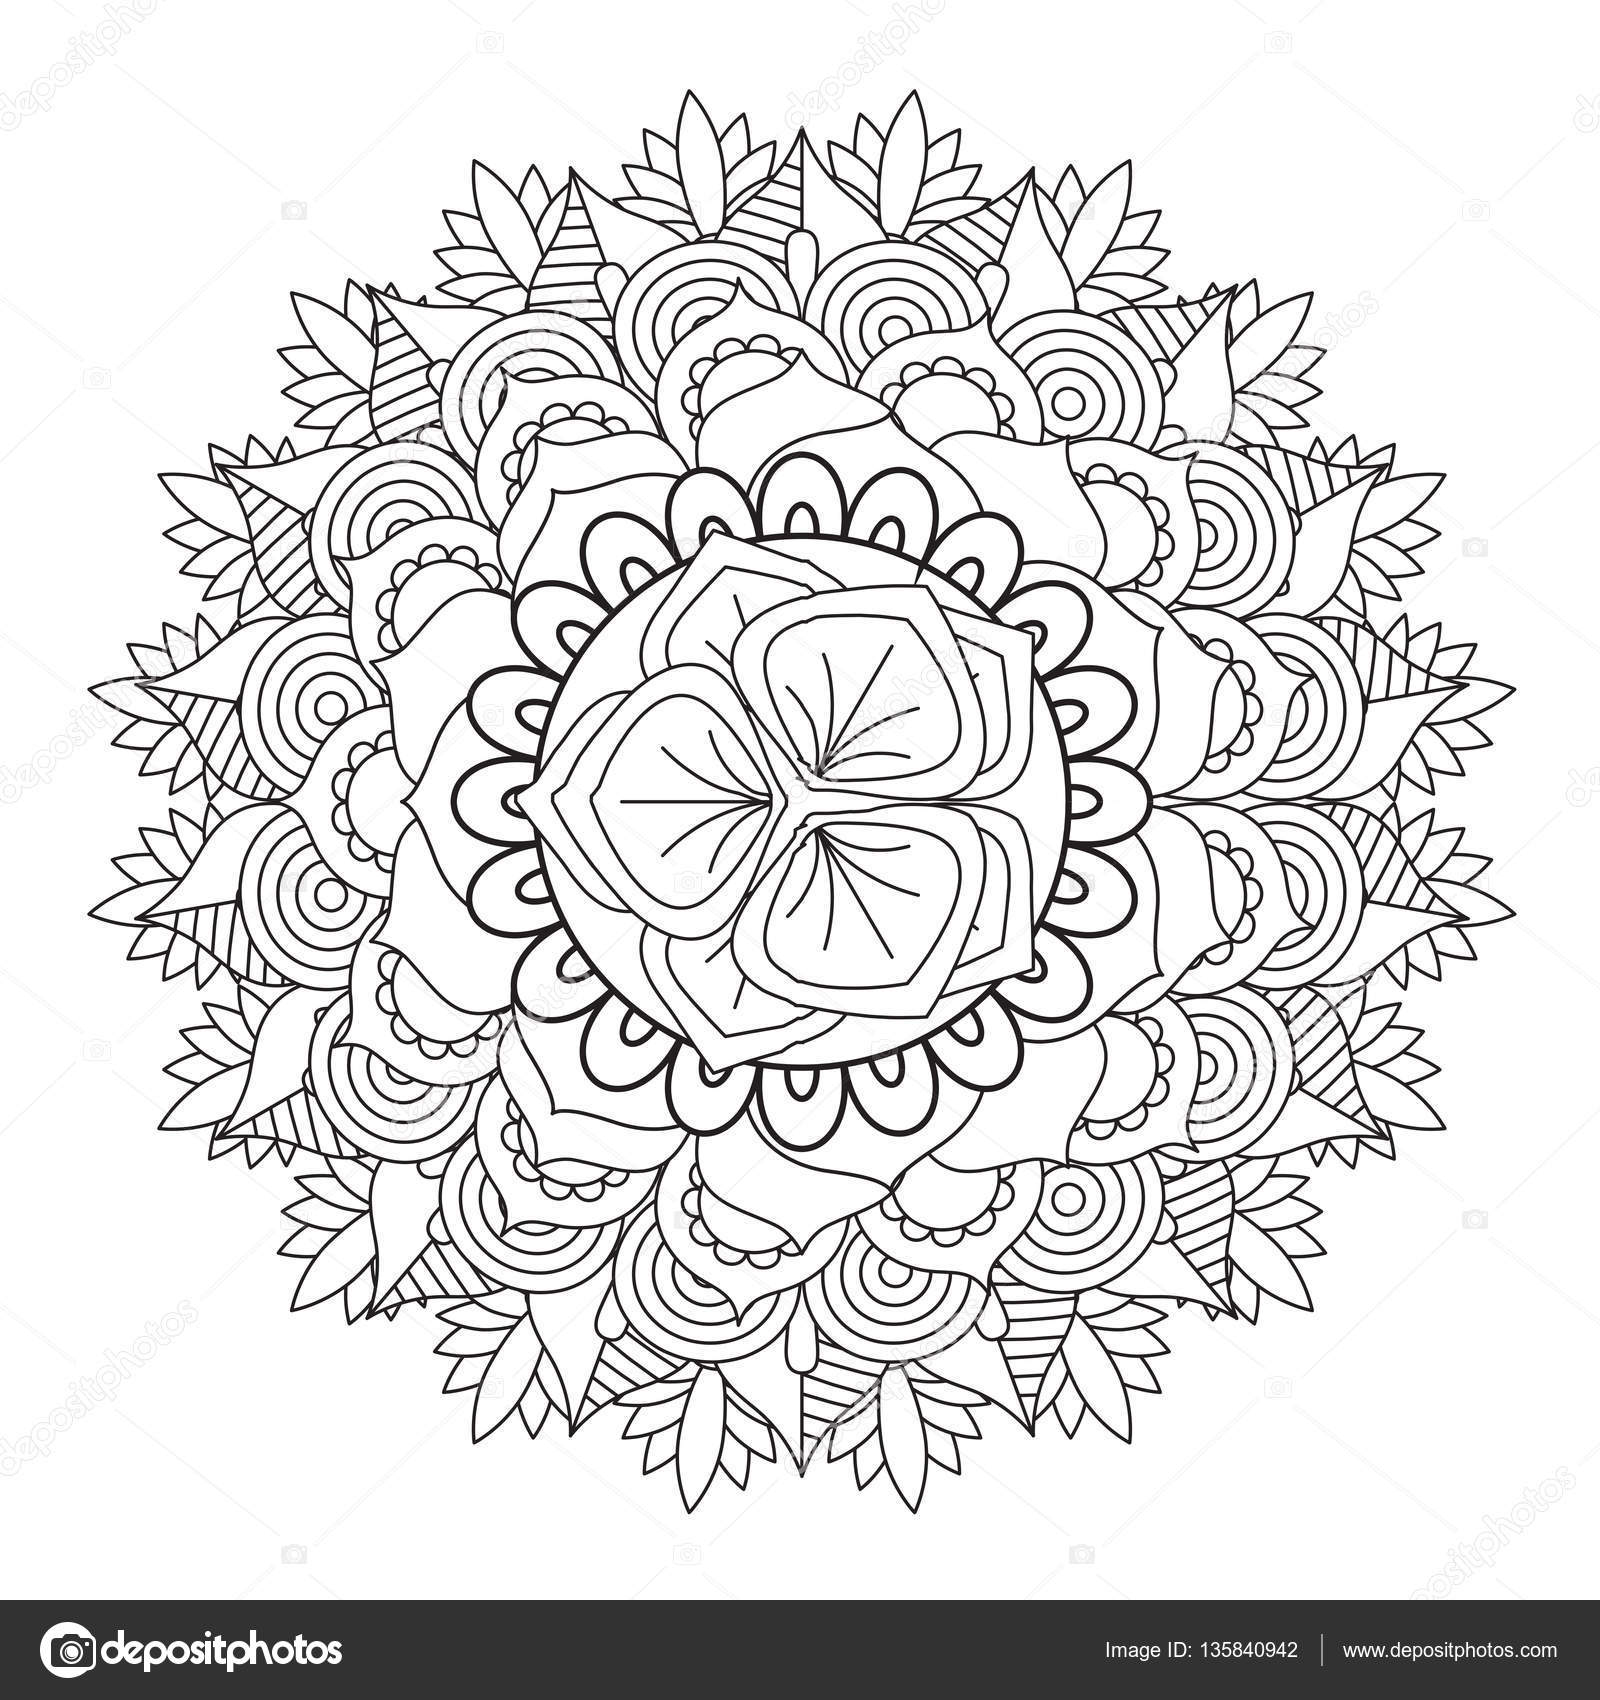 Outline Mandala For Coloring Book Decorative Round Ornament